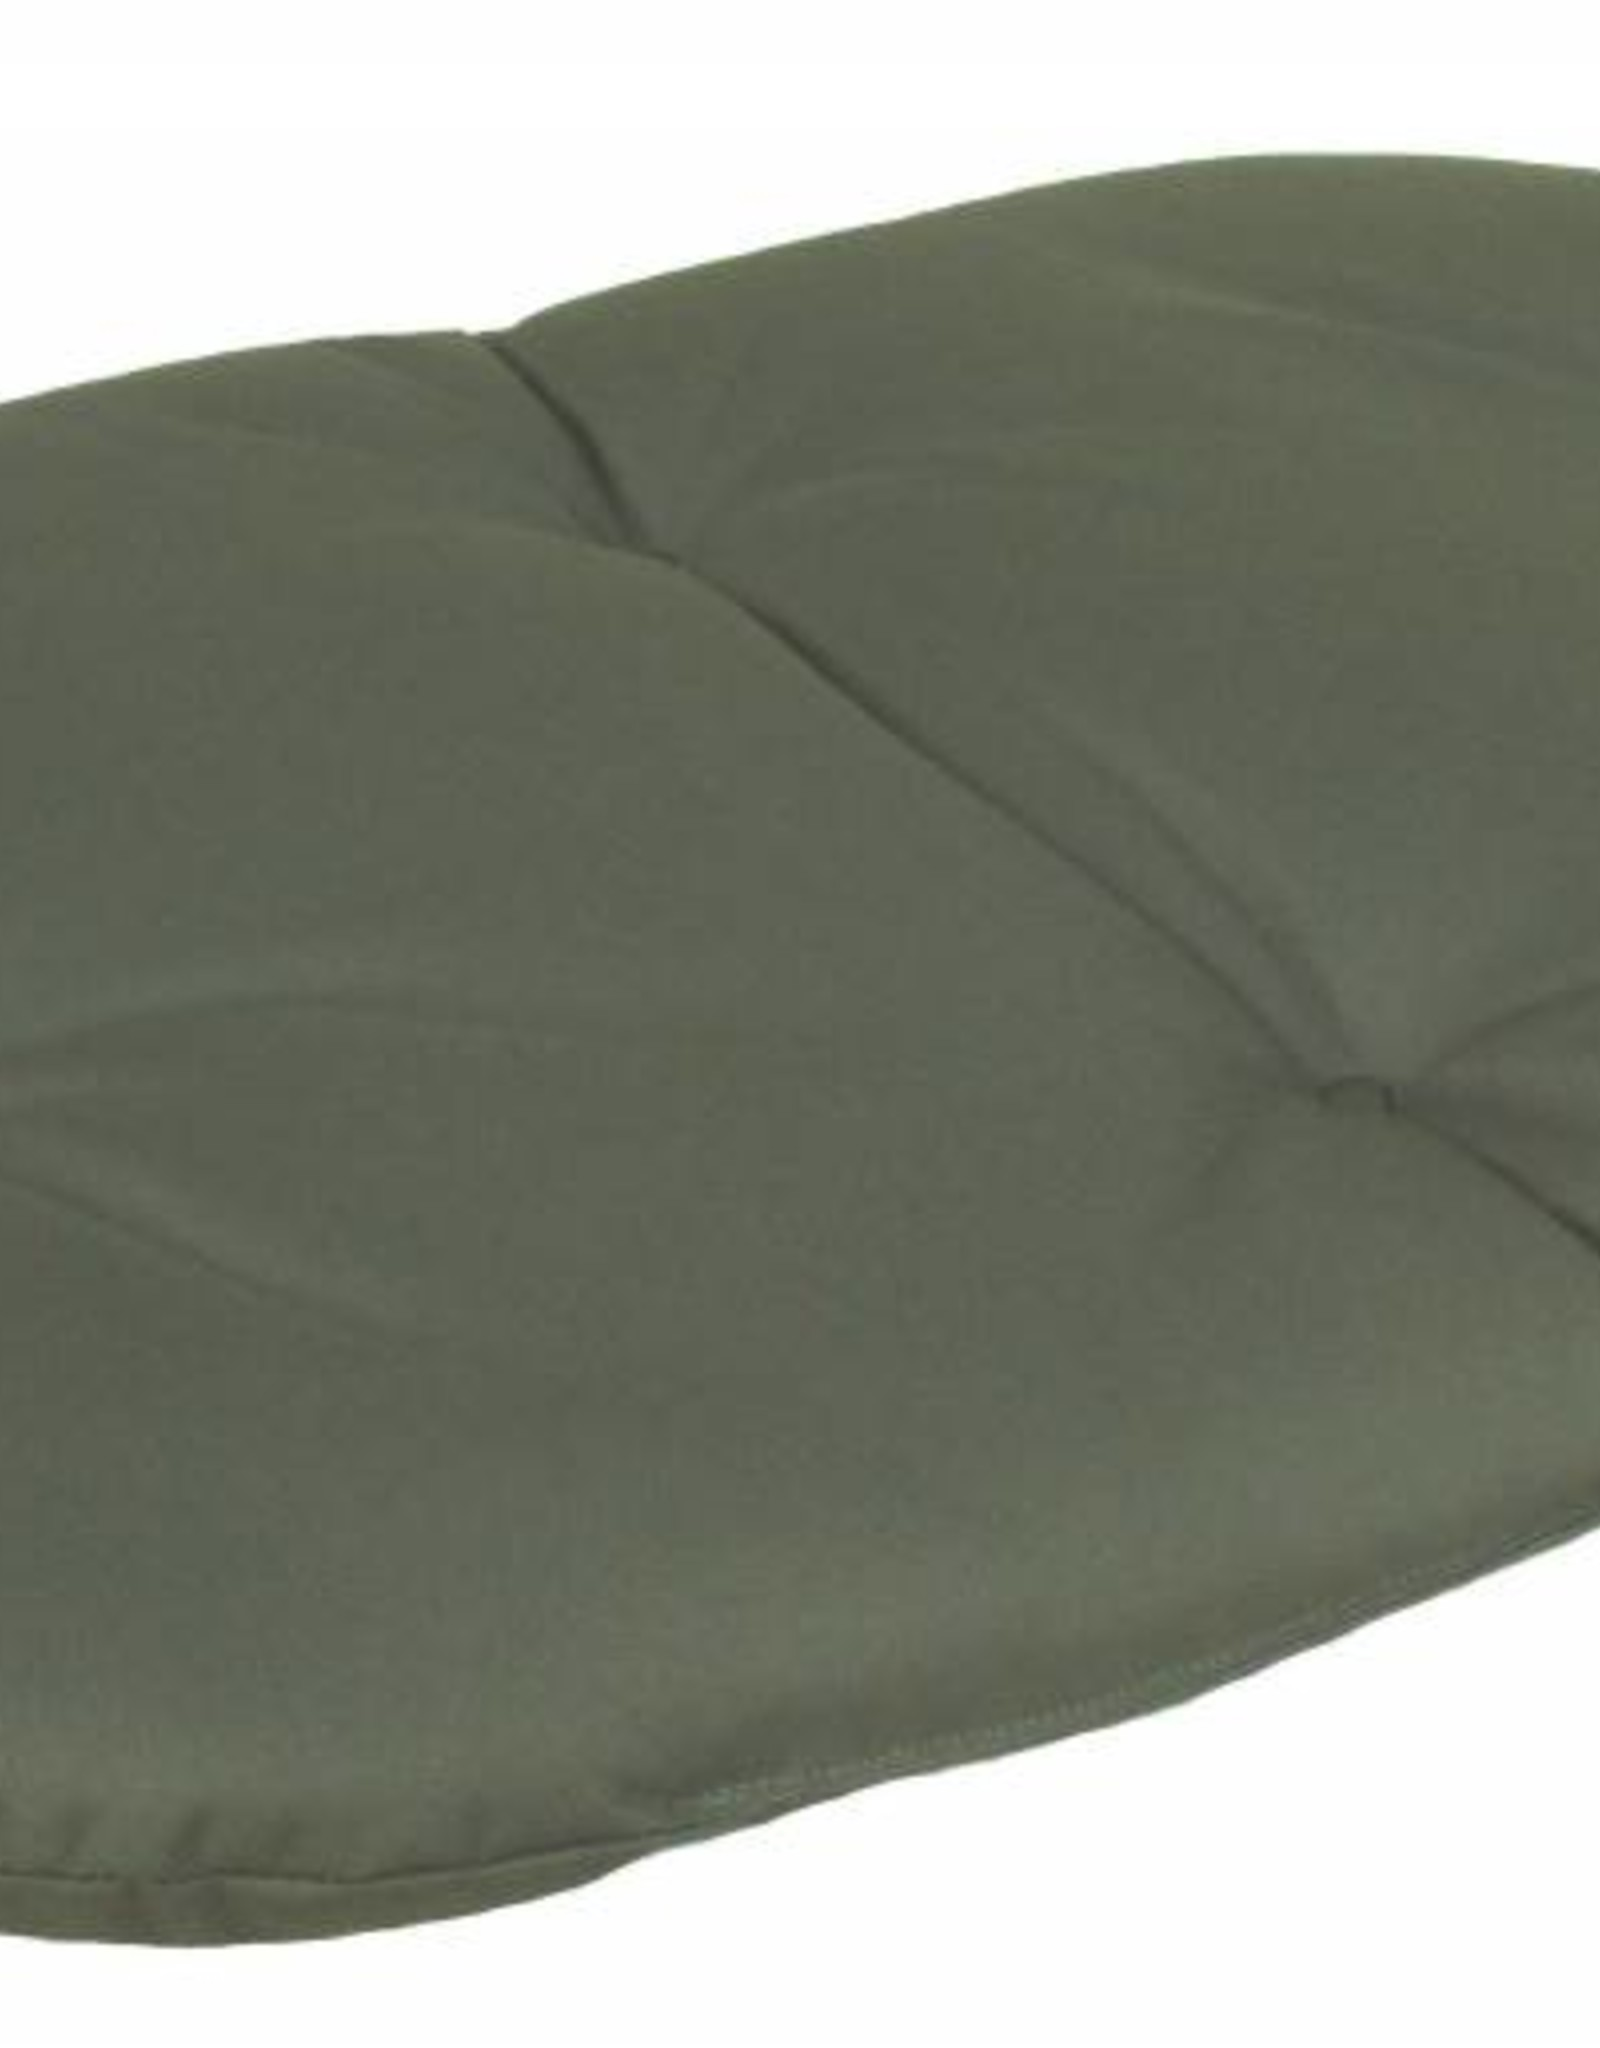 Pets & Leisure Country Dog Heavy Duty Oval Waterproof Cushion Pad in Green